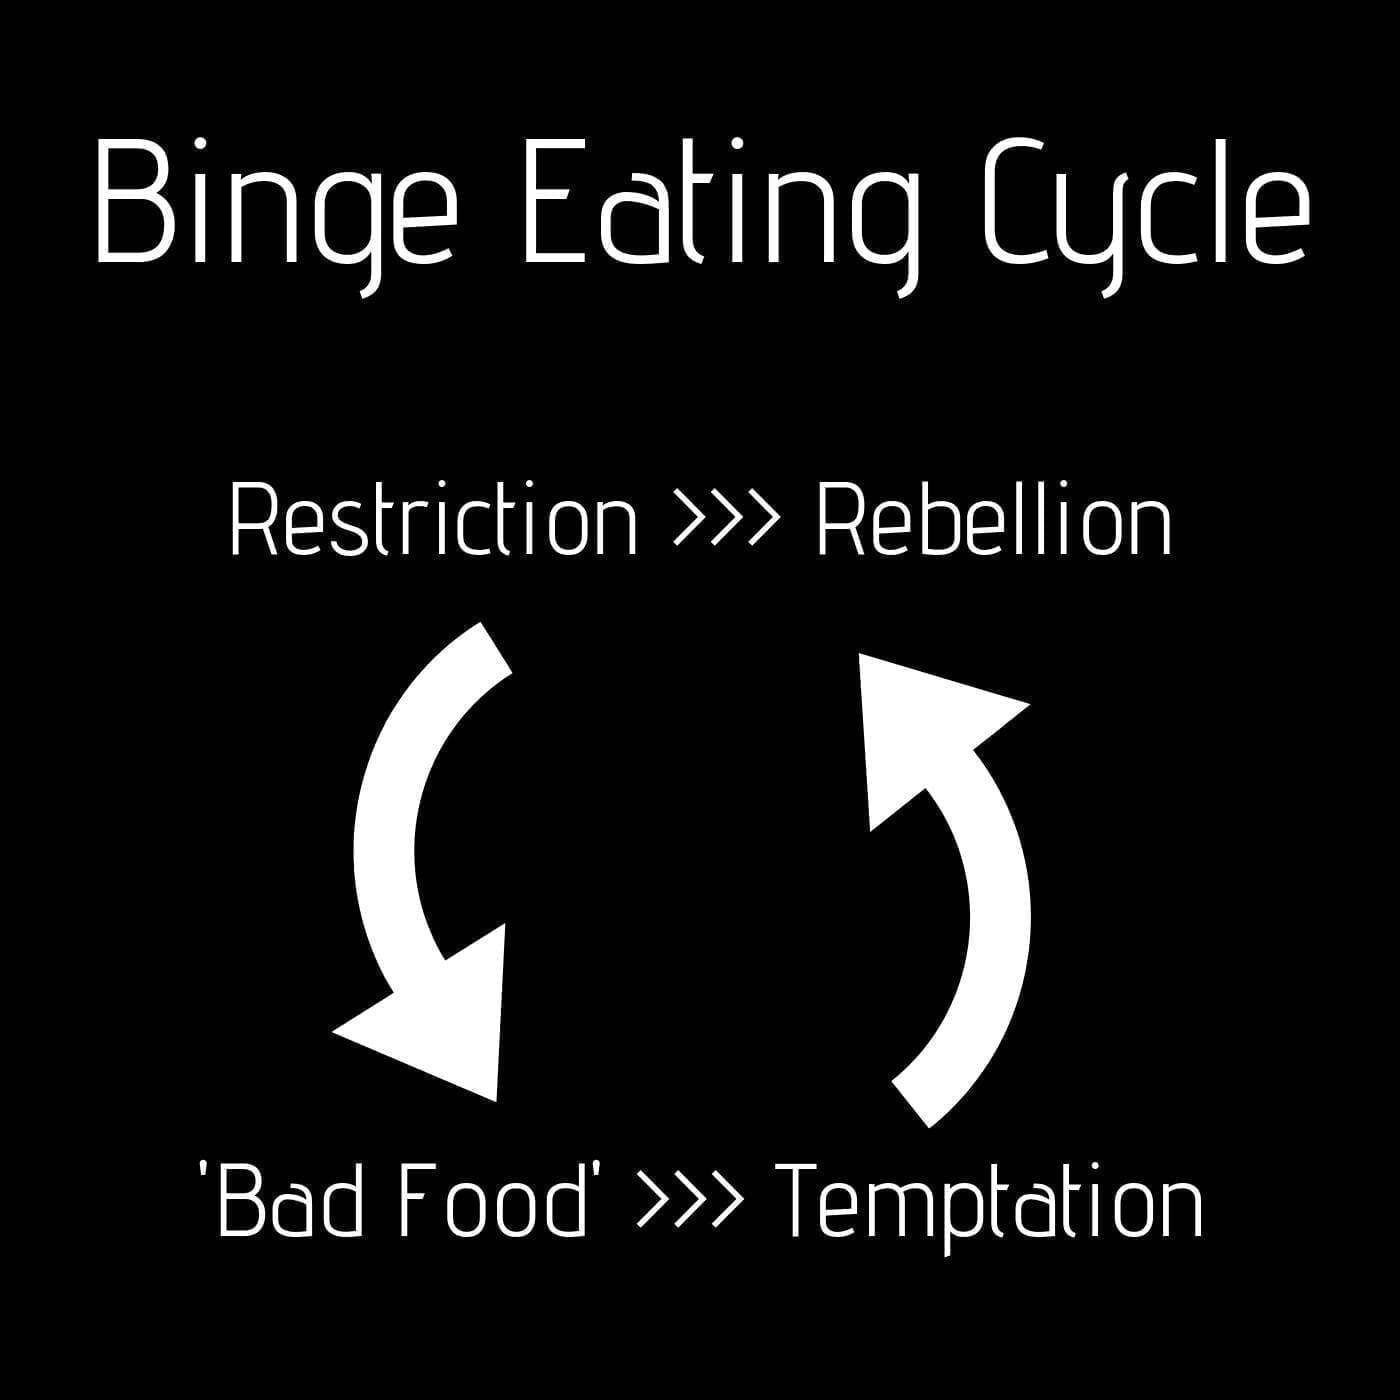 end compulsive eating picture of cycle of restriction, rebellion, and temptation